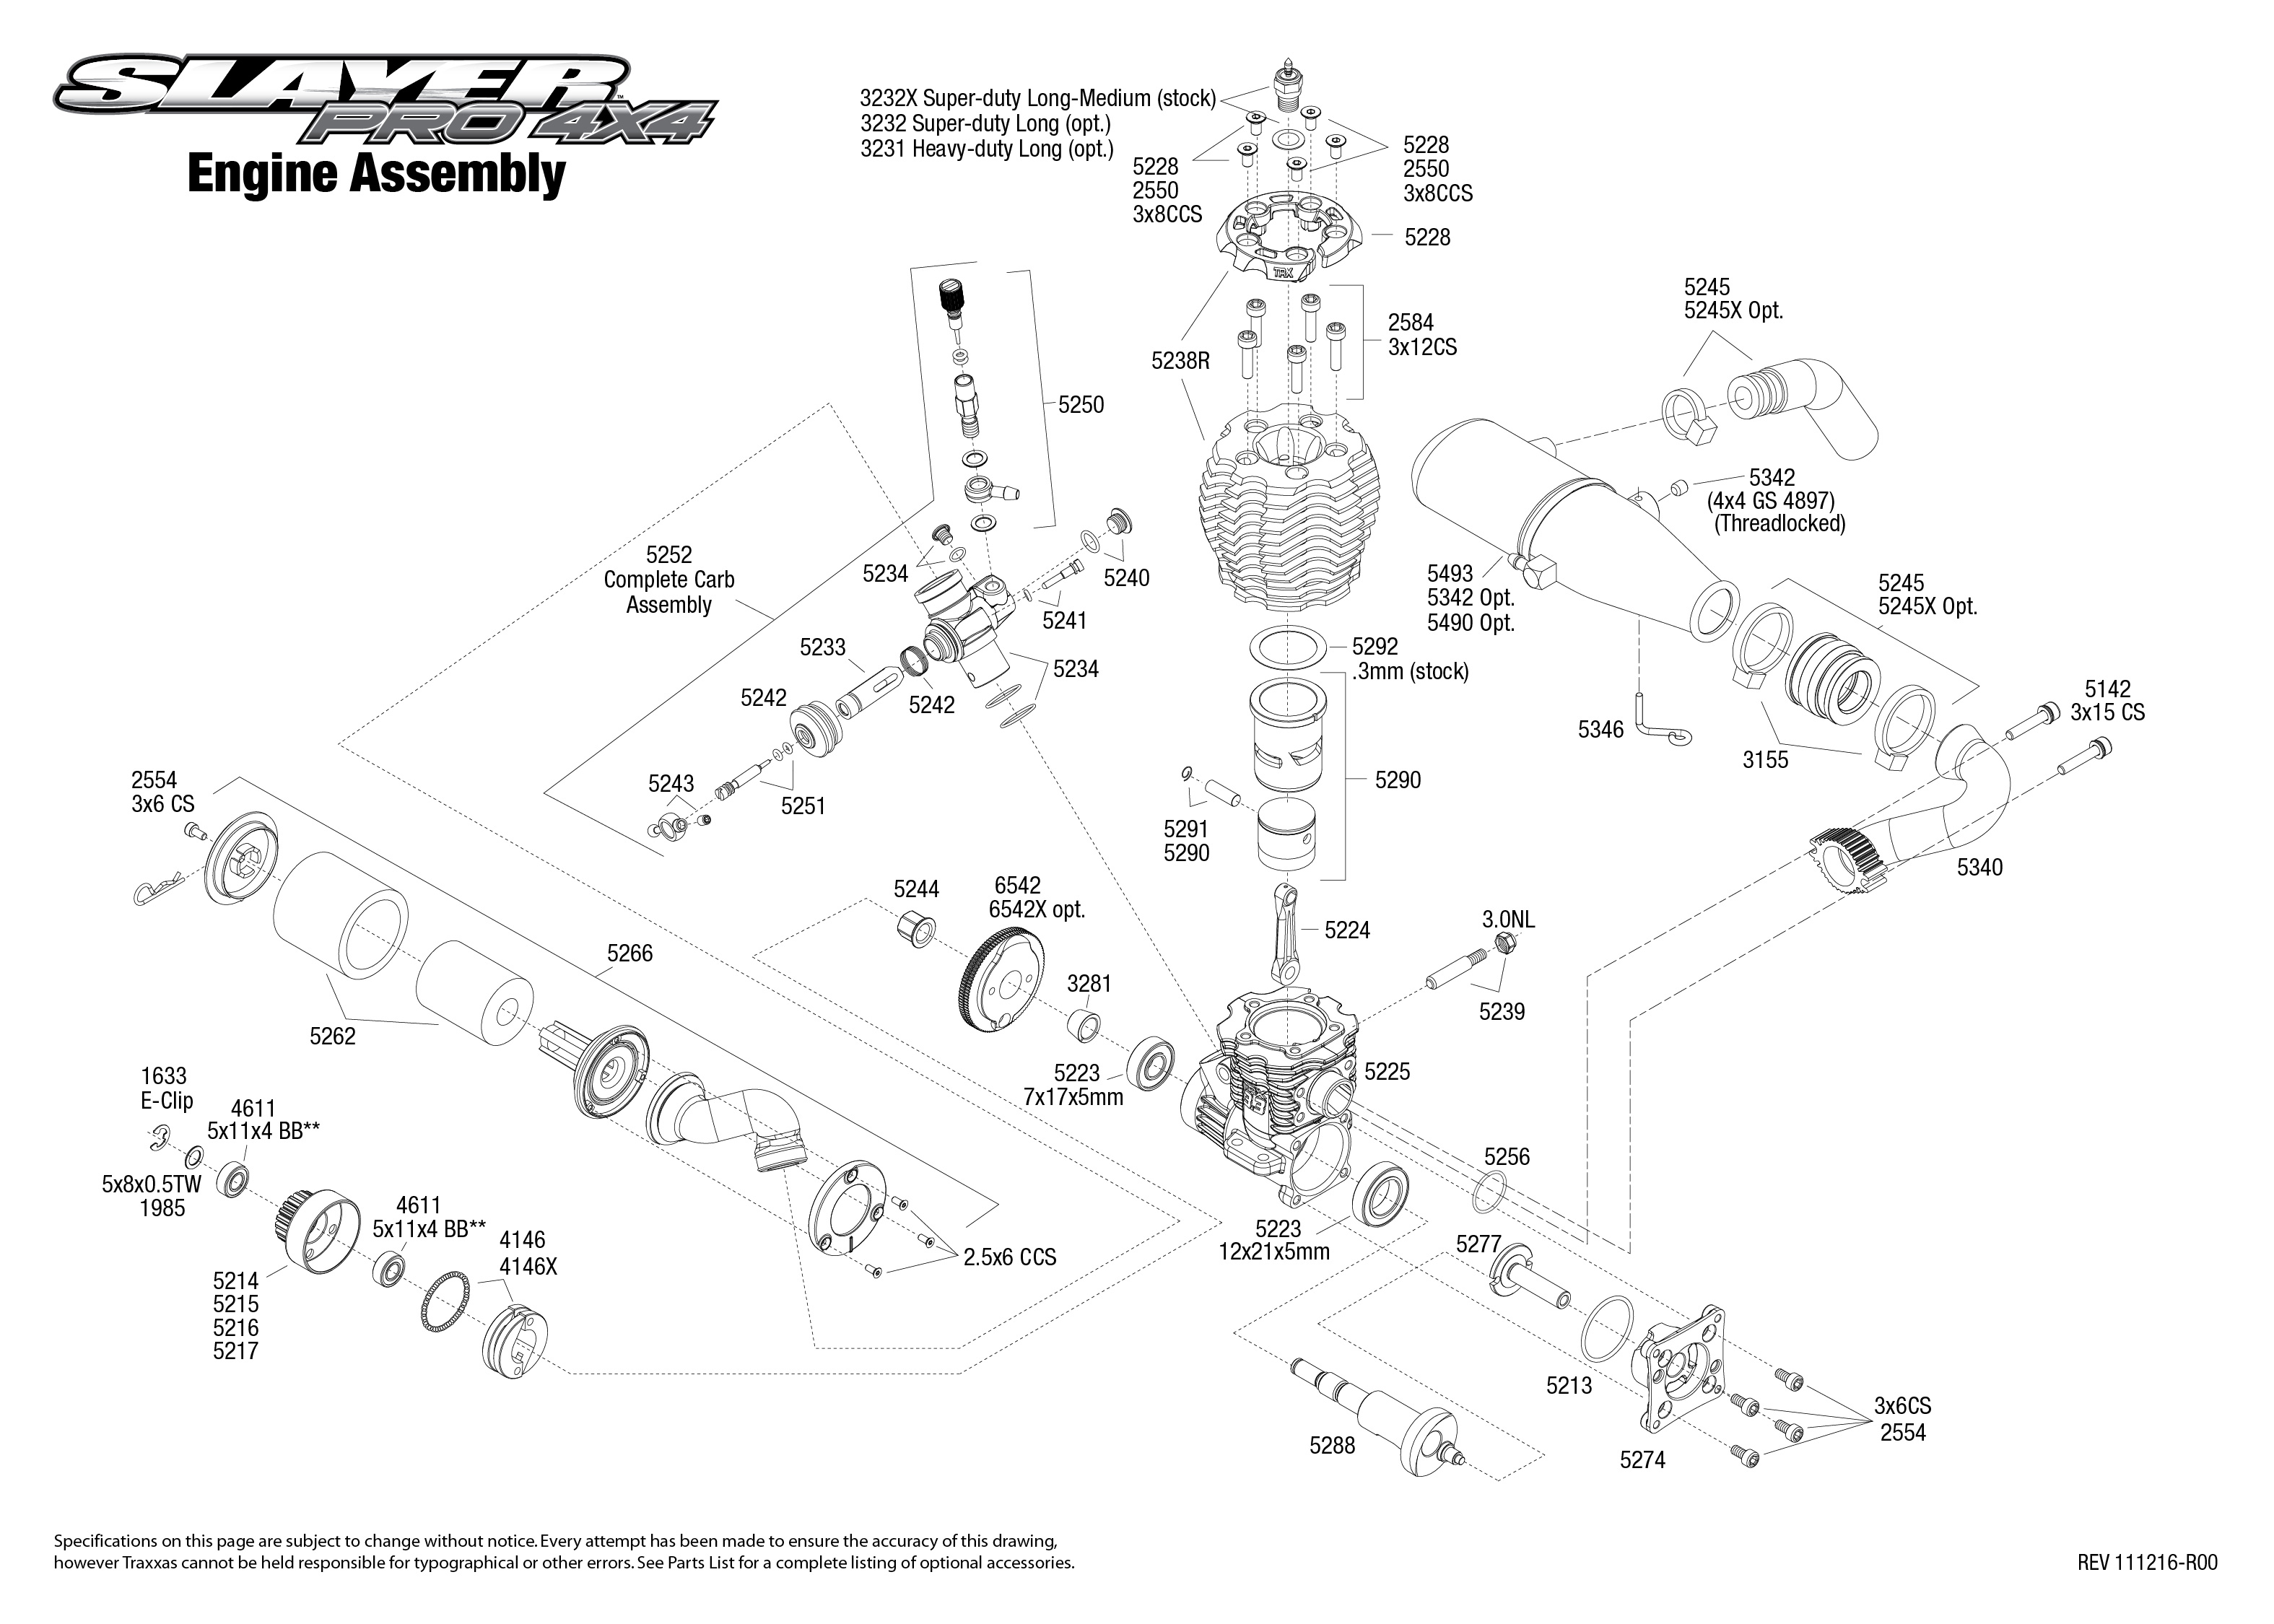 [DIAGRAM_4FR]  Slayer Pro 4x4 (5907) Engine Assembly | Exploded View | Traxxas | Traxxas 2 5 Engine Diagram |  | Traxxas